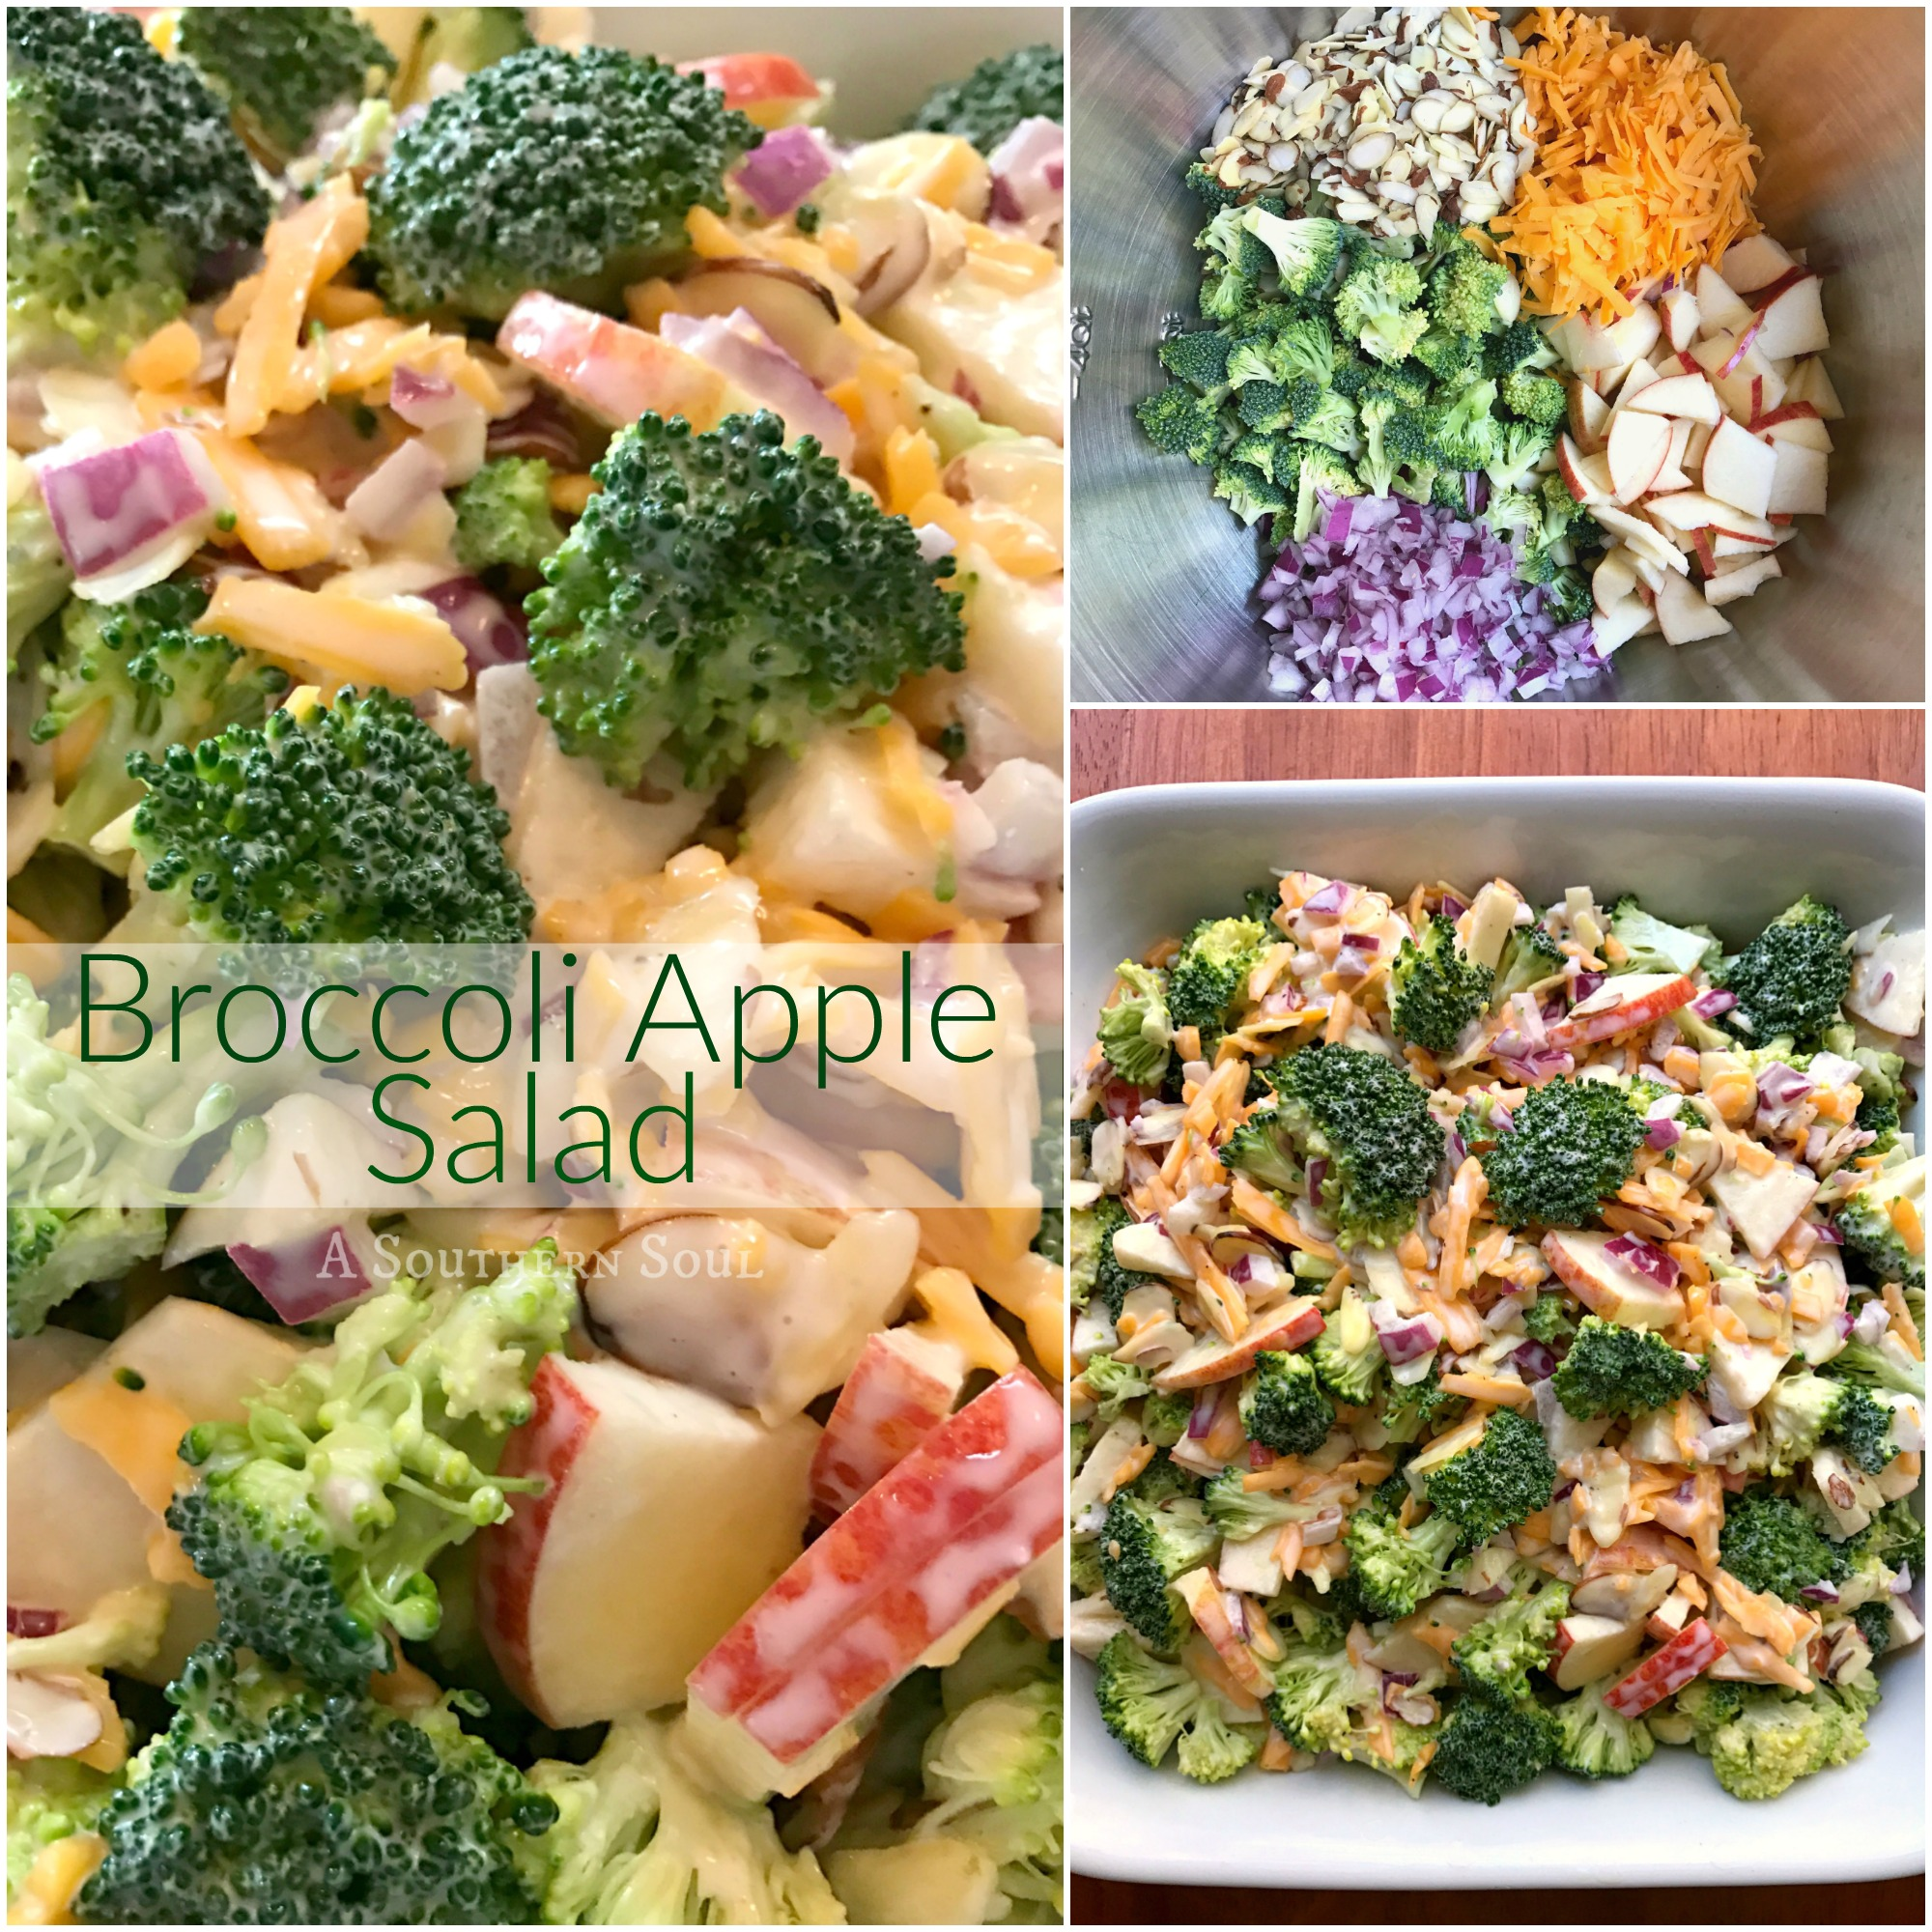 Broccoli Apple Salad trio